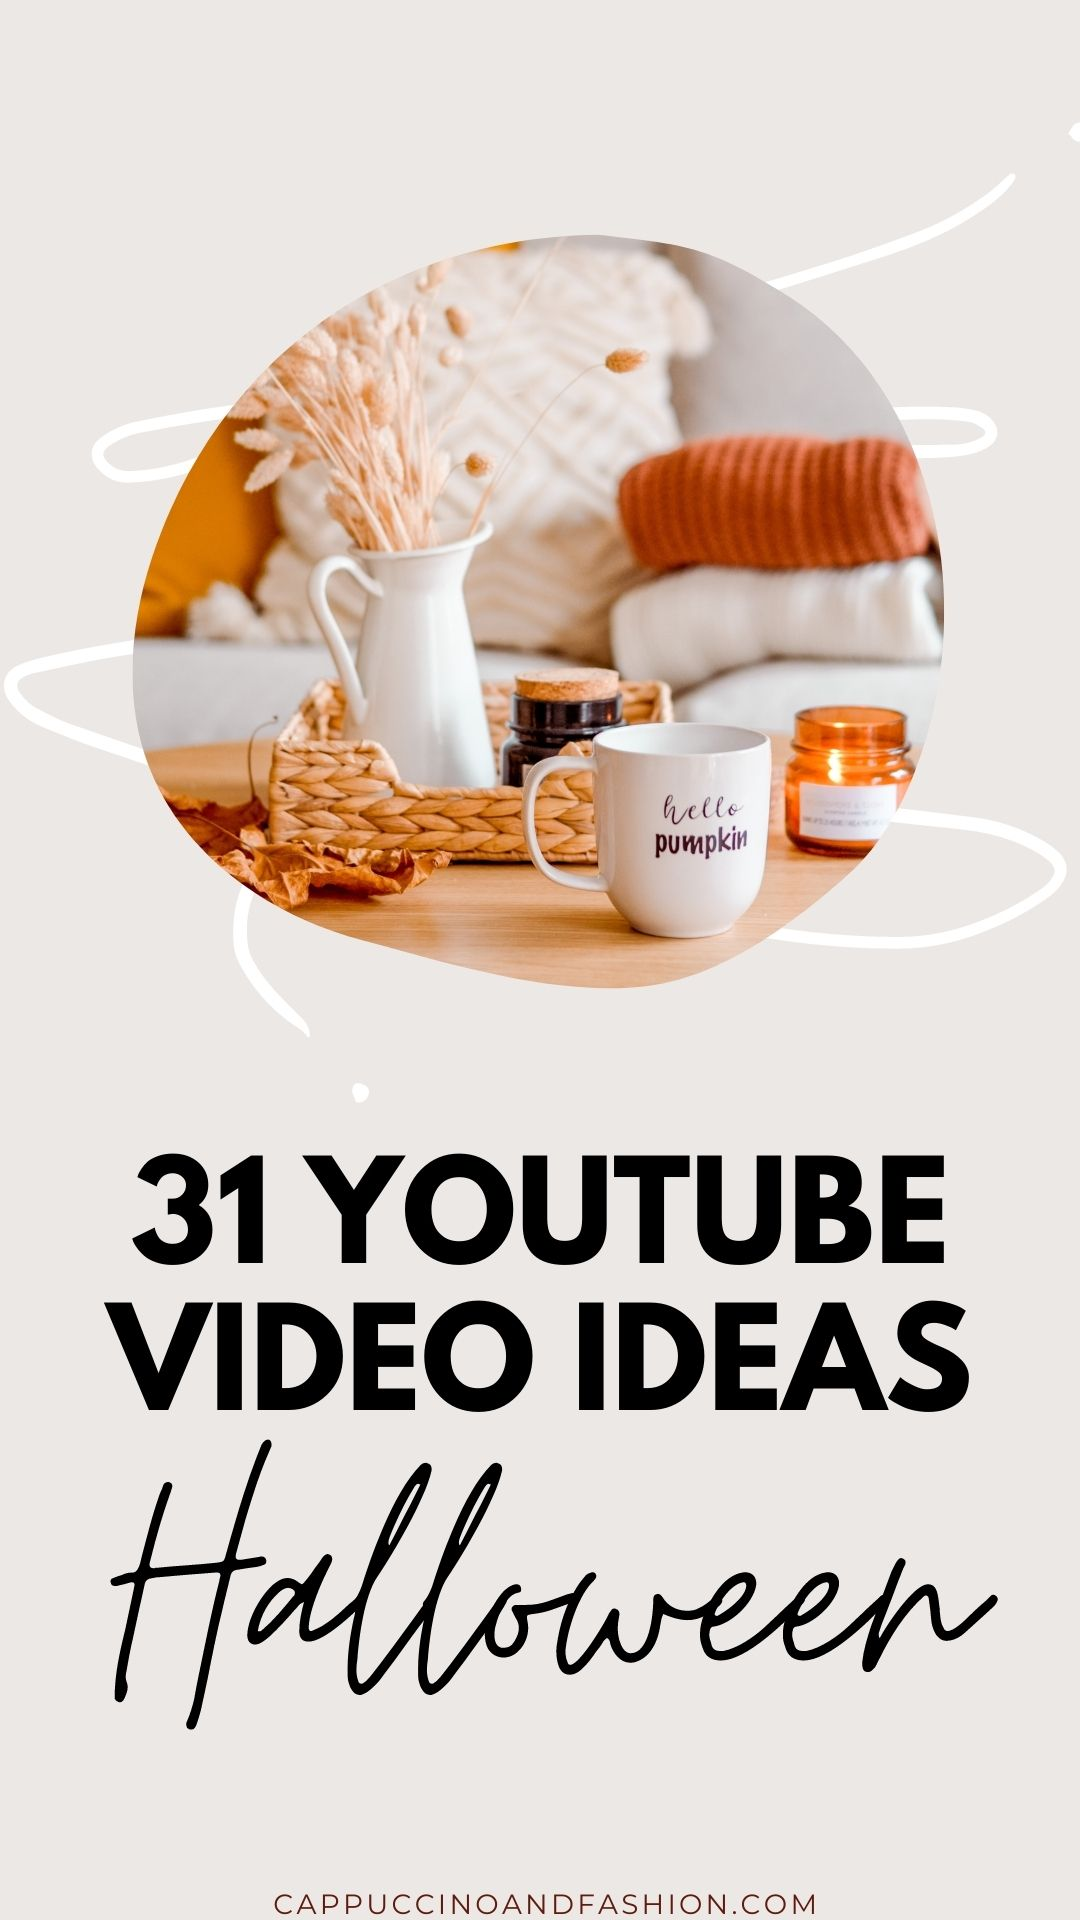 31 Halloween Video Ideas for YouTube 2021